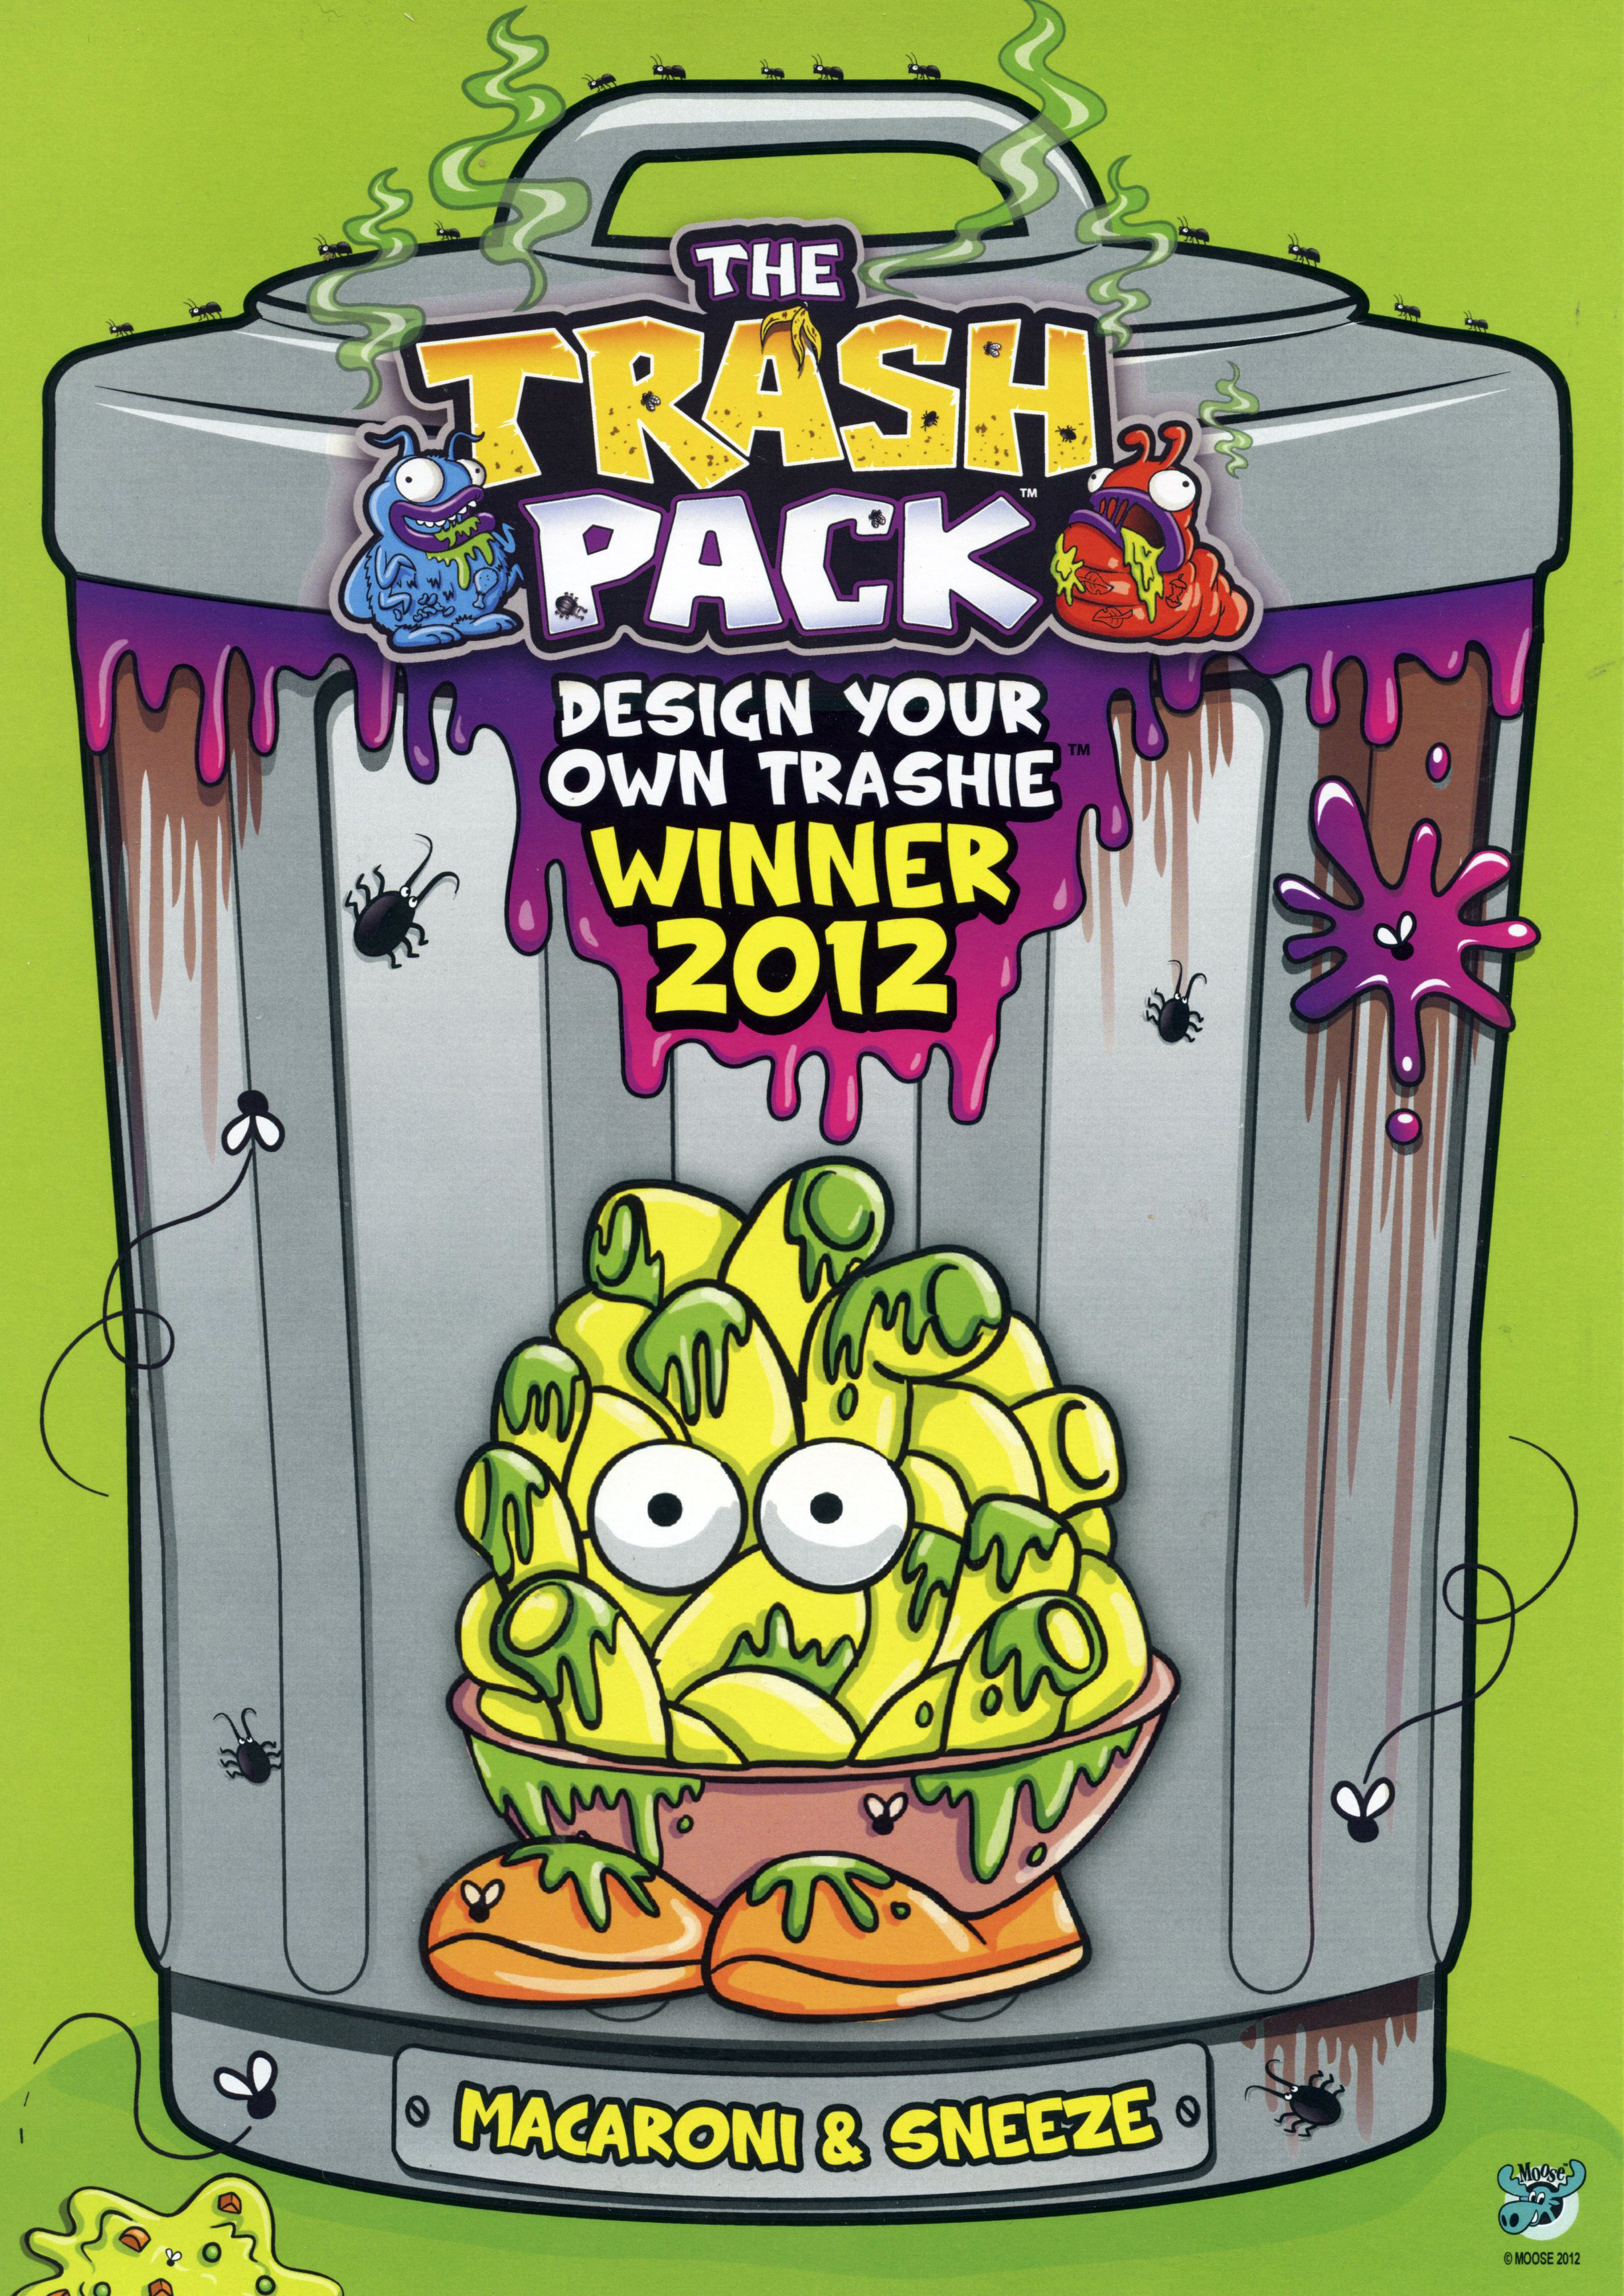 Interview with Design Your Own Trashie 2012 Winner Brian Roberts